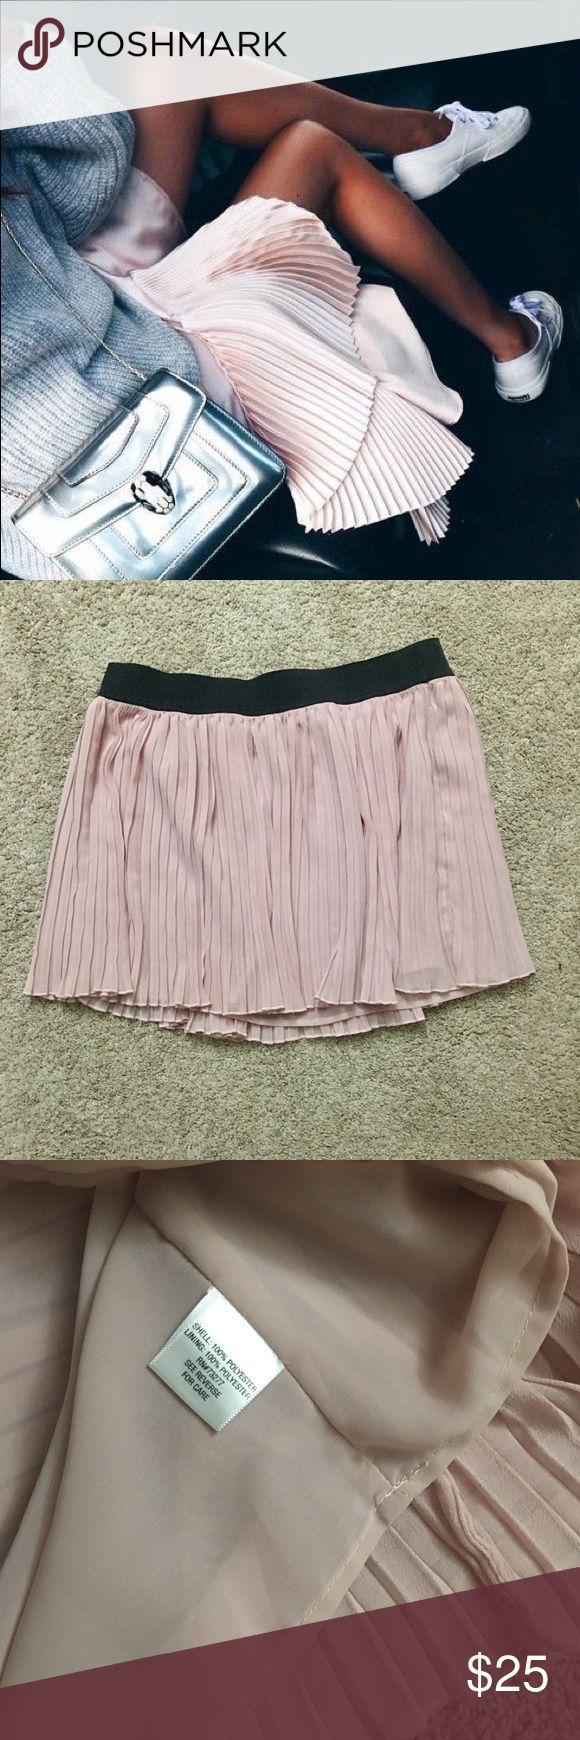 Blush pink pleated chiffon skirt Gorgeous blush pink pleated skirt! Perfect for the spring and summer. Beautiful staple piece for any closet. Chiffon, double layered, not sheer at all. Elastic waist band. Purchase on posh, but unfortunately it was too big for me  Candie's Skirts Mini